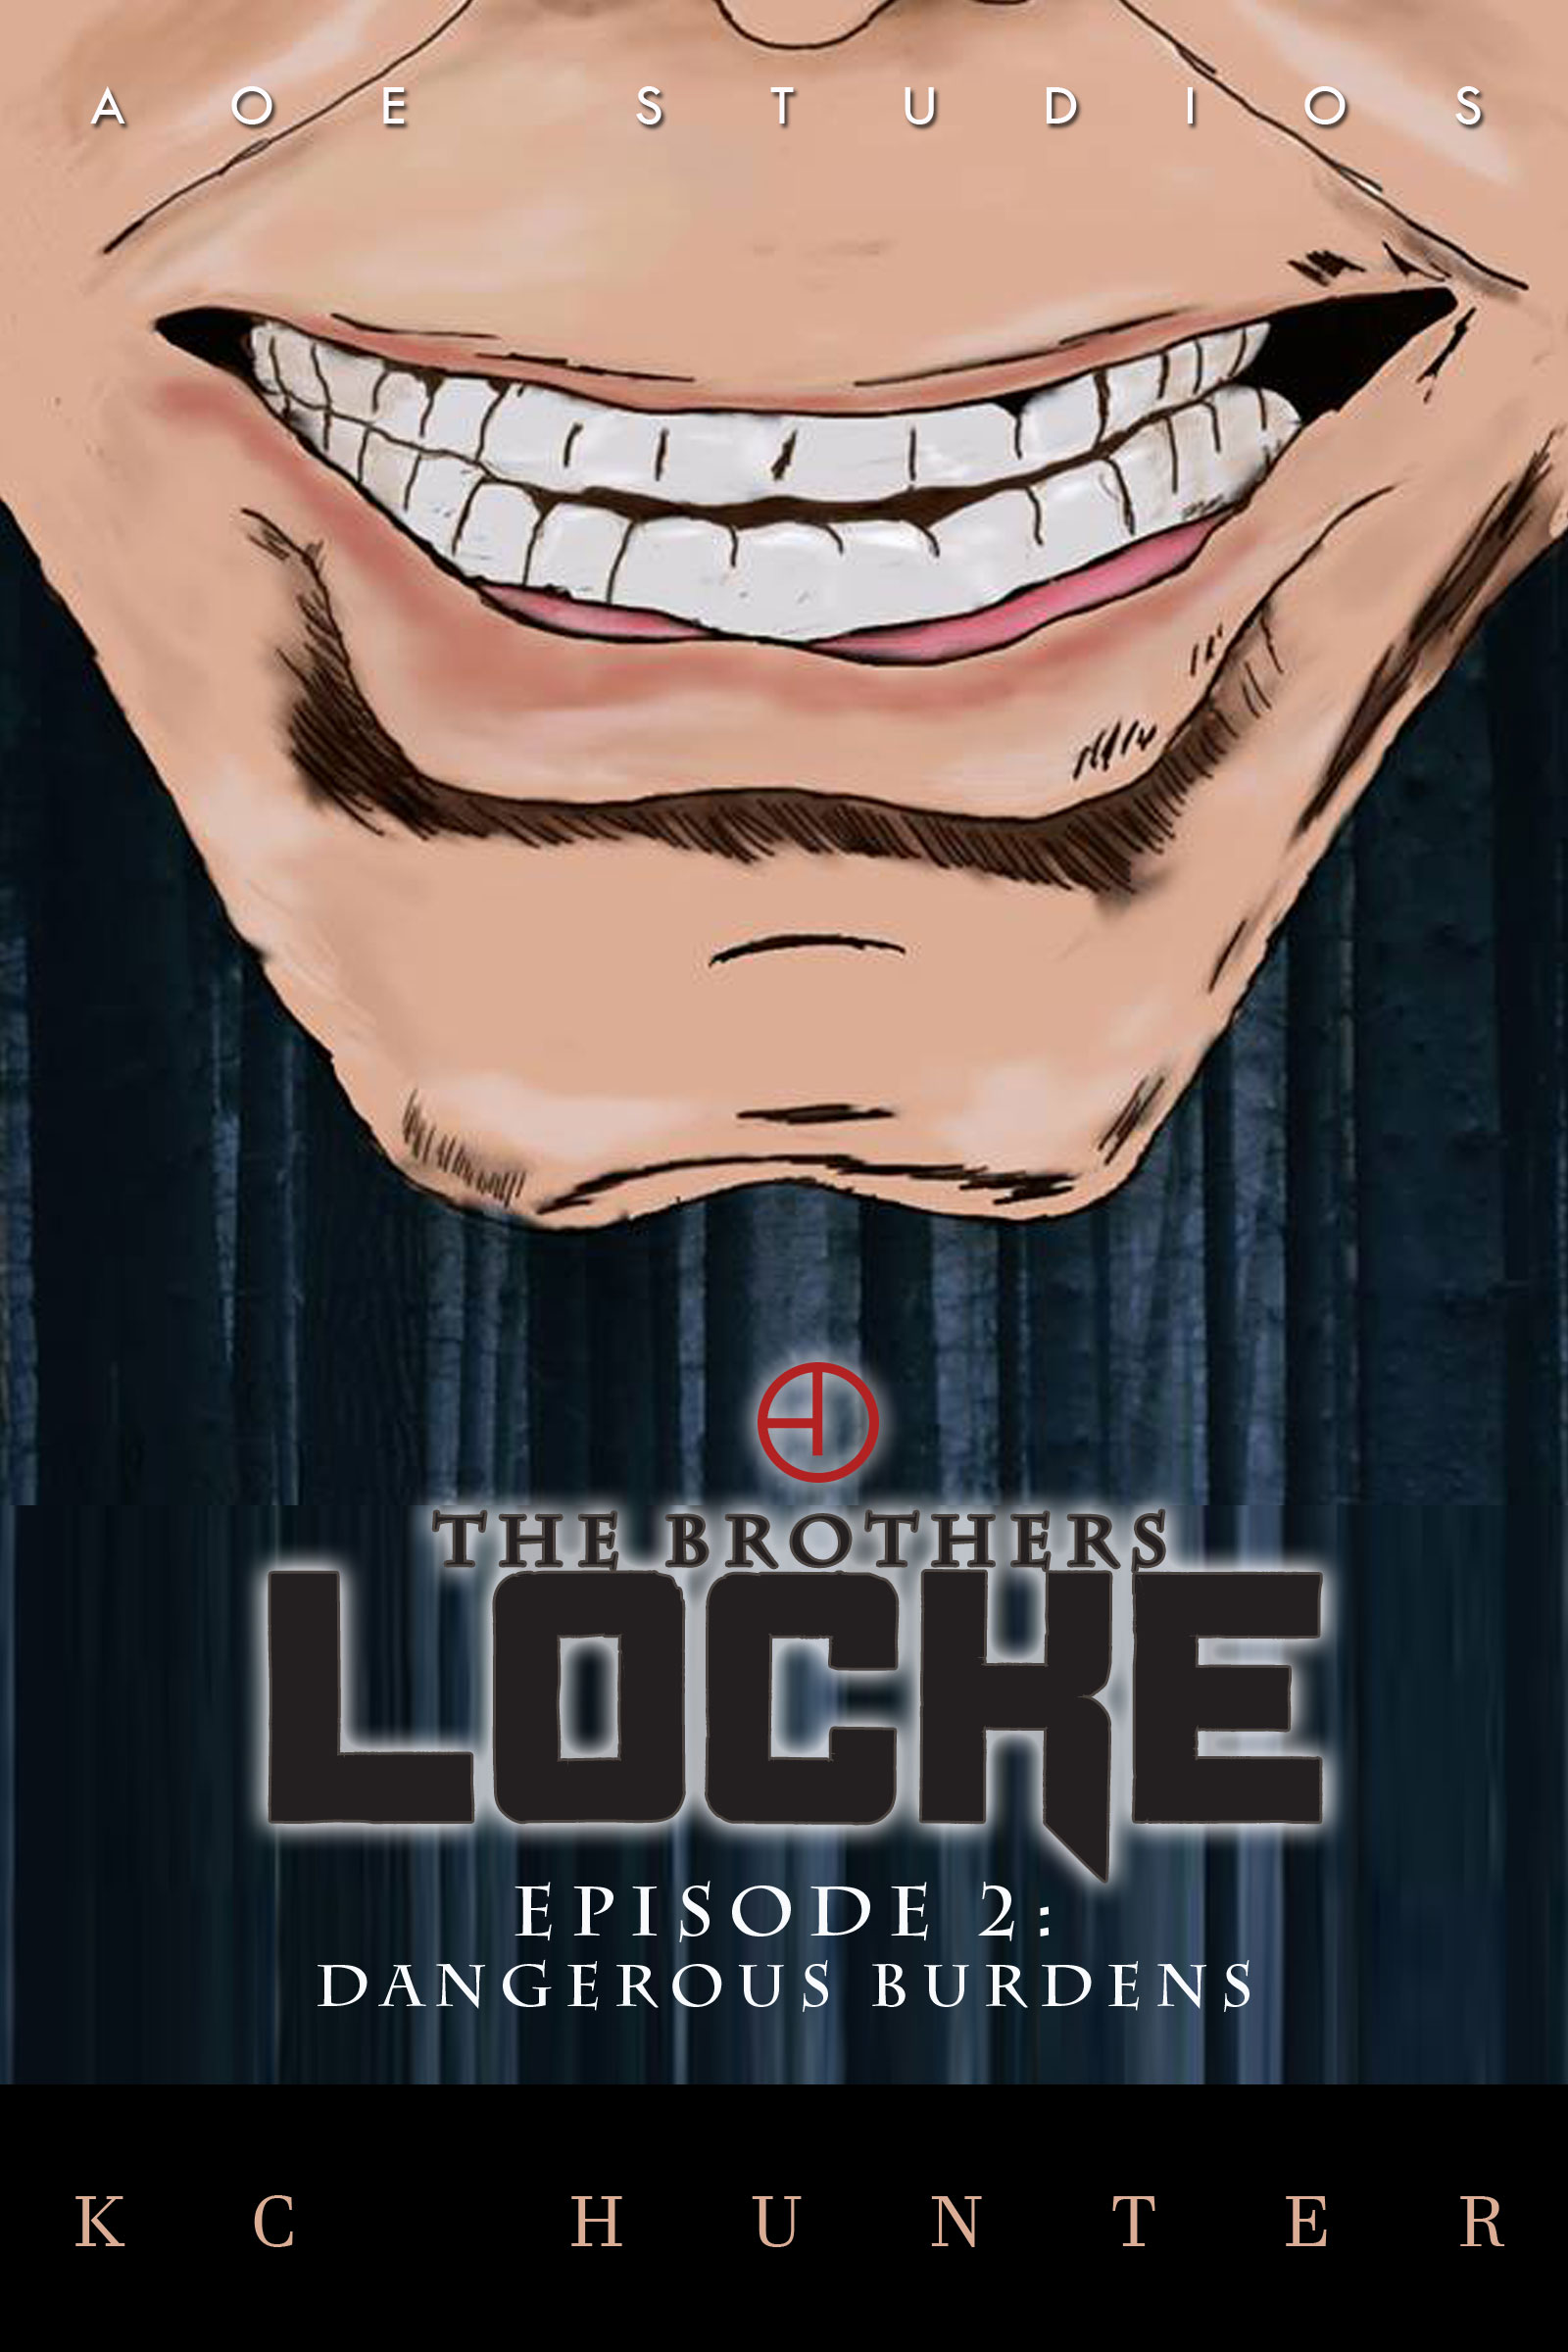 The Brothers Locke Episode 2 Book Cover Image